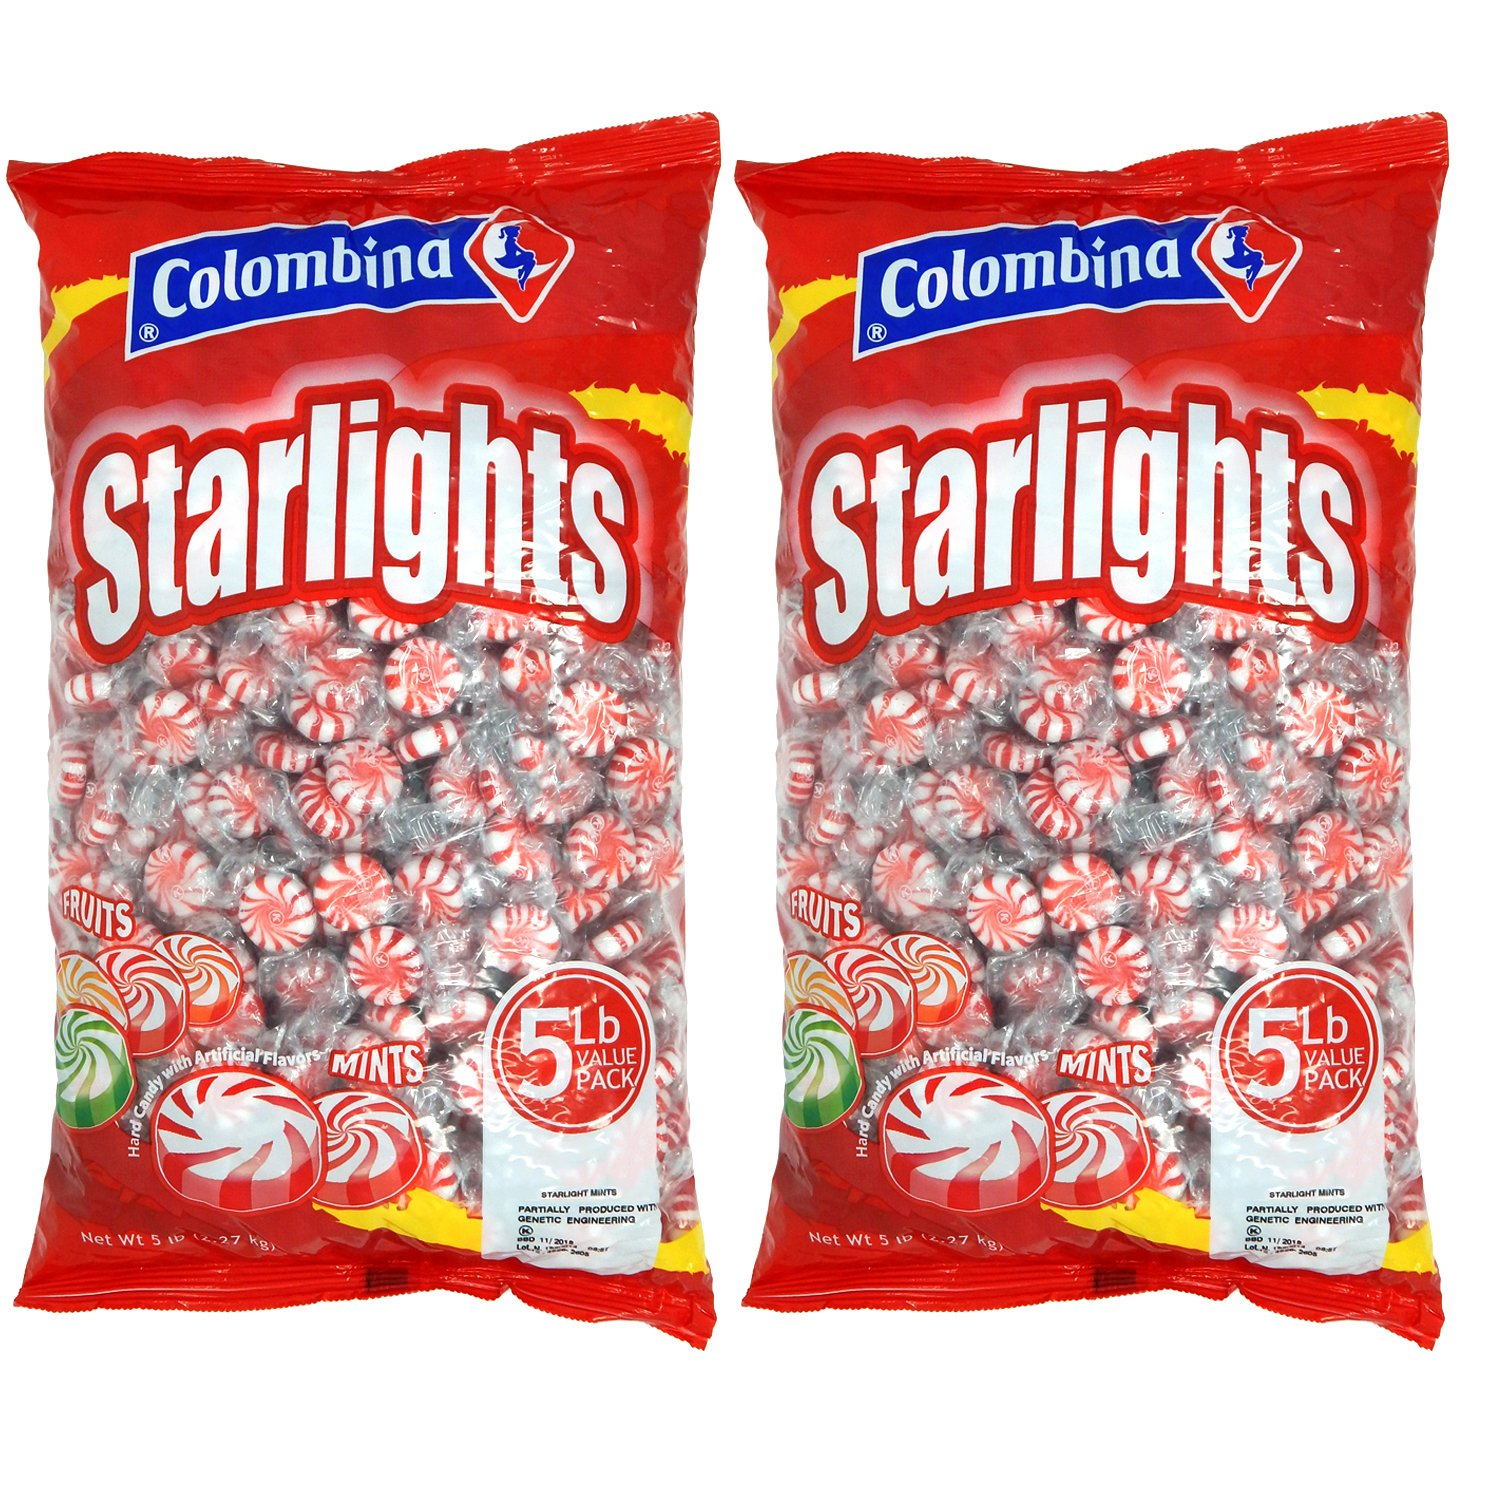 Nosh Pack Peppermint Starlight Mints Individually Wrapped Candy Bulk 10 Pounds - Approx. 800 Mints